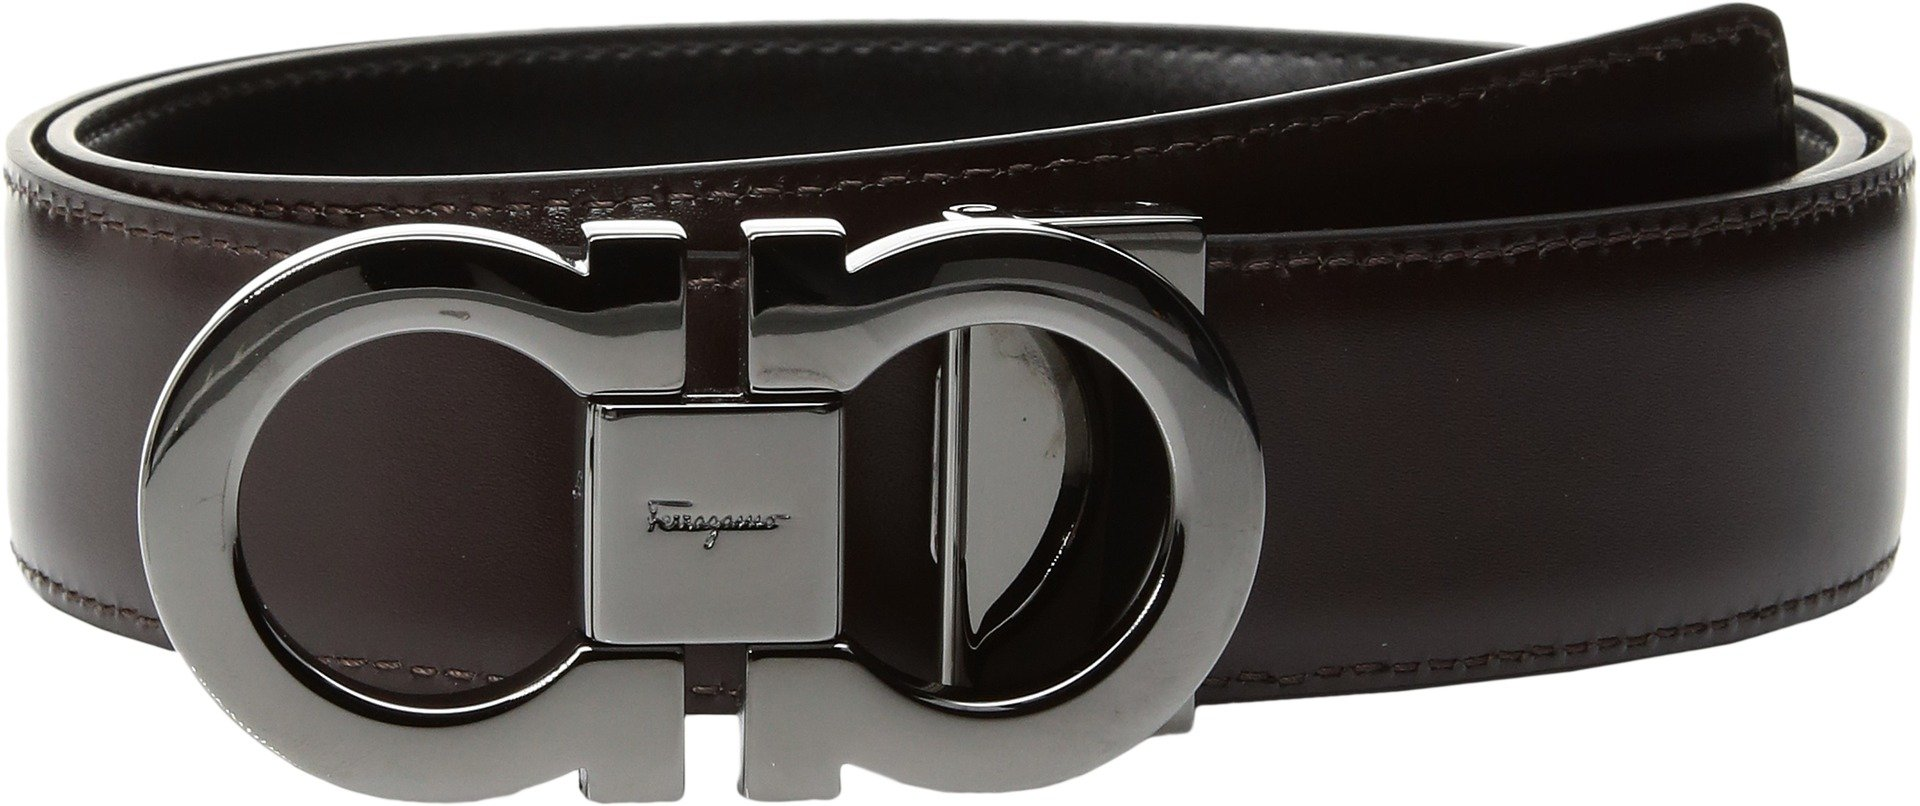 Salvatore Ferragamo Men's Double Gancini Reversible Belt, Black/Auburn, 36 by Salvatore Ferragamo (Image #2)